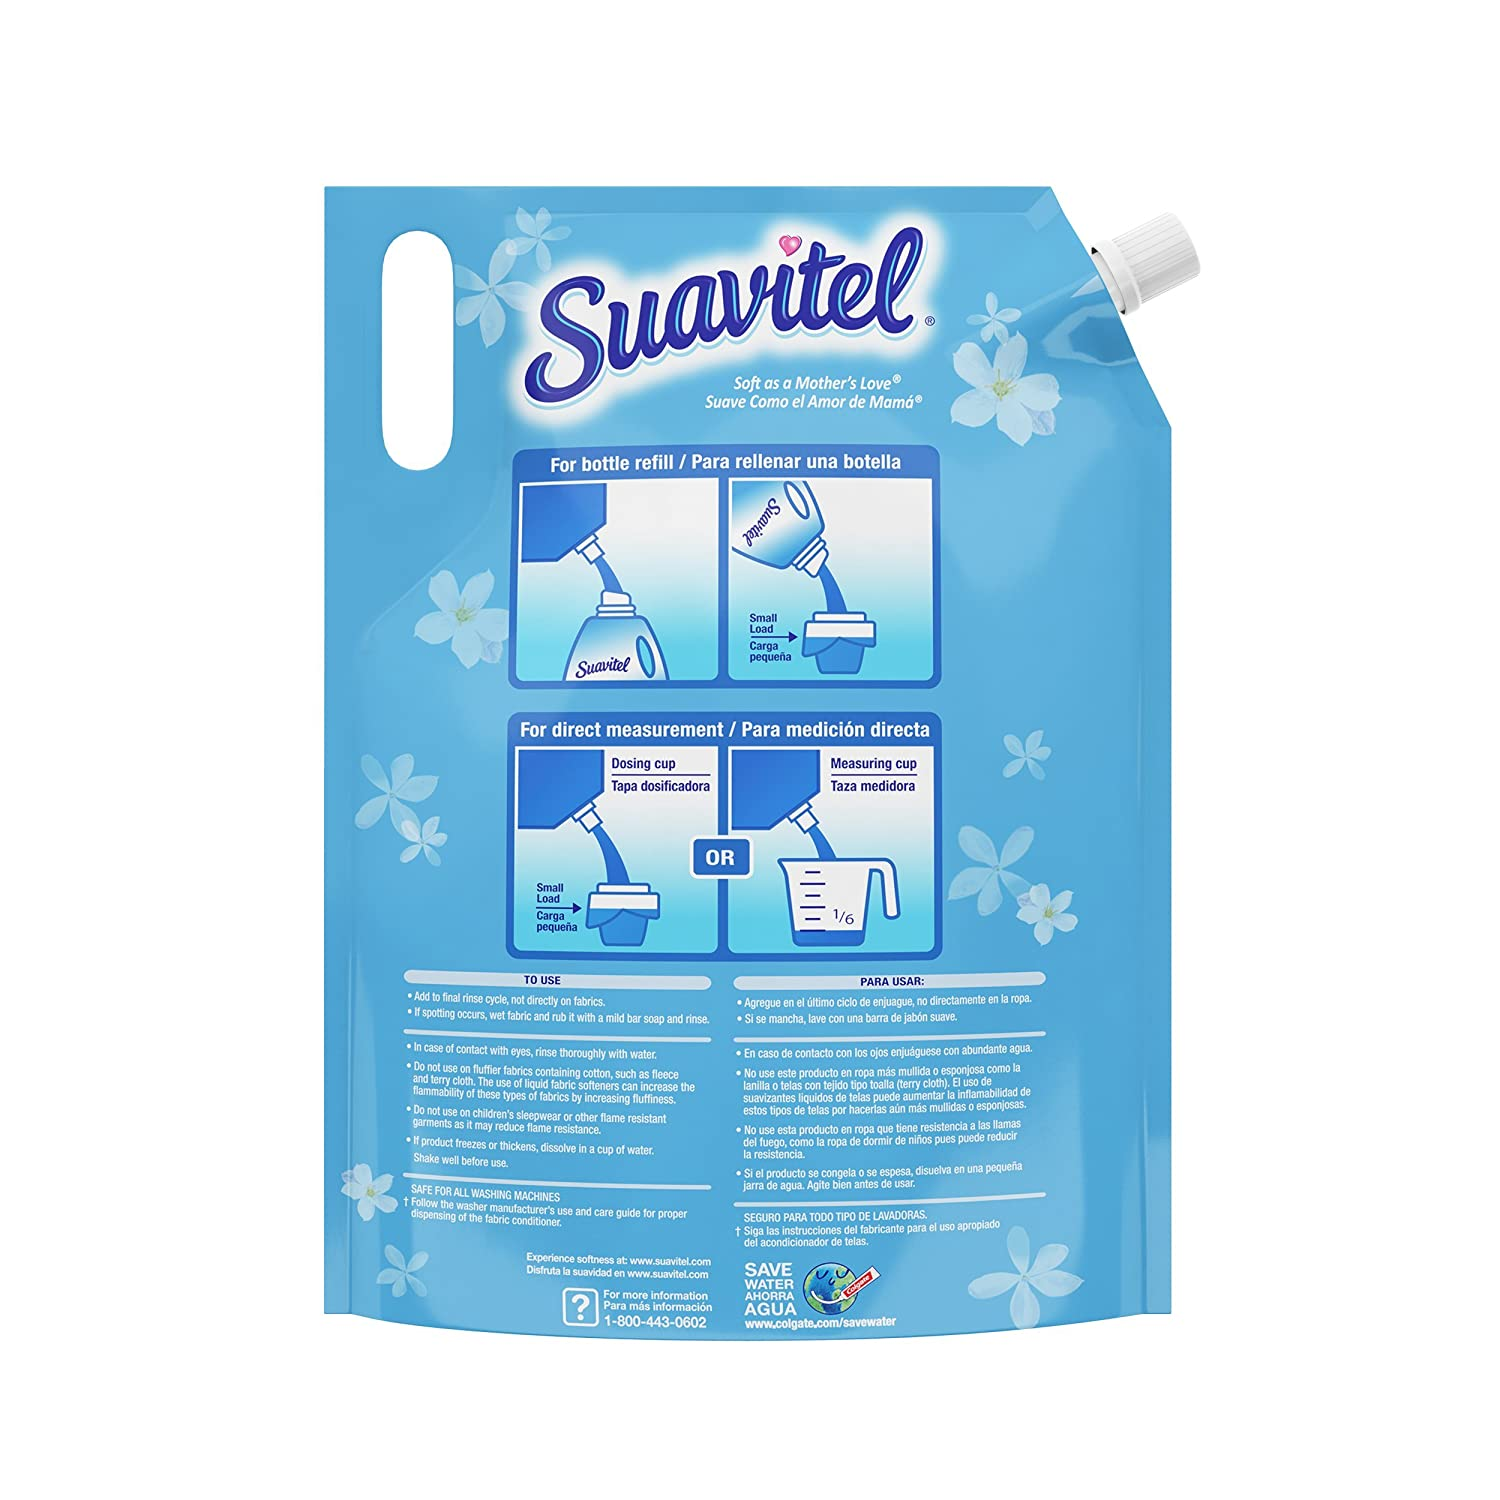 Amazon.com: Suavitel Liquid Fabric Softener Stand Up Pouch, Field Flowers - 49 Fluid Ounce (4 Pack): Health & Personal Care